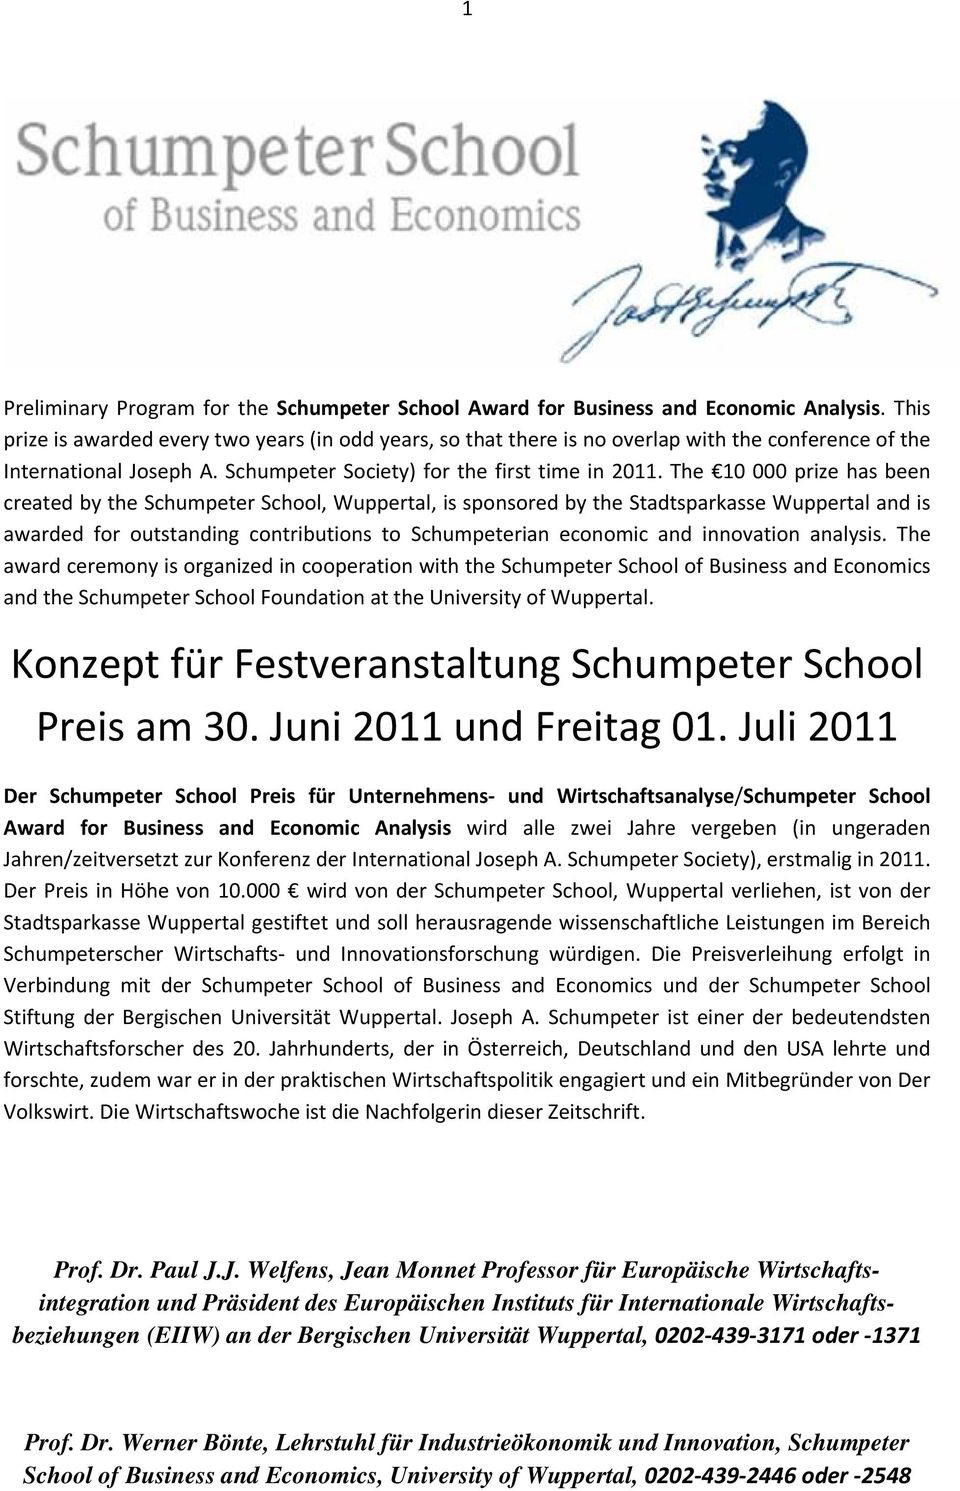 The 10 000 prize has been created by the Schumpeter School, Wuppertal, is sponsored by the Stadtsparkasse Wuppertal and is awarded for outstanding contributions to Schumpeterian economic and